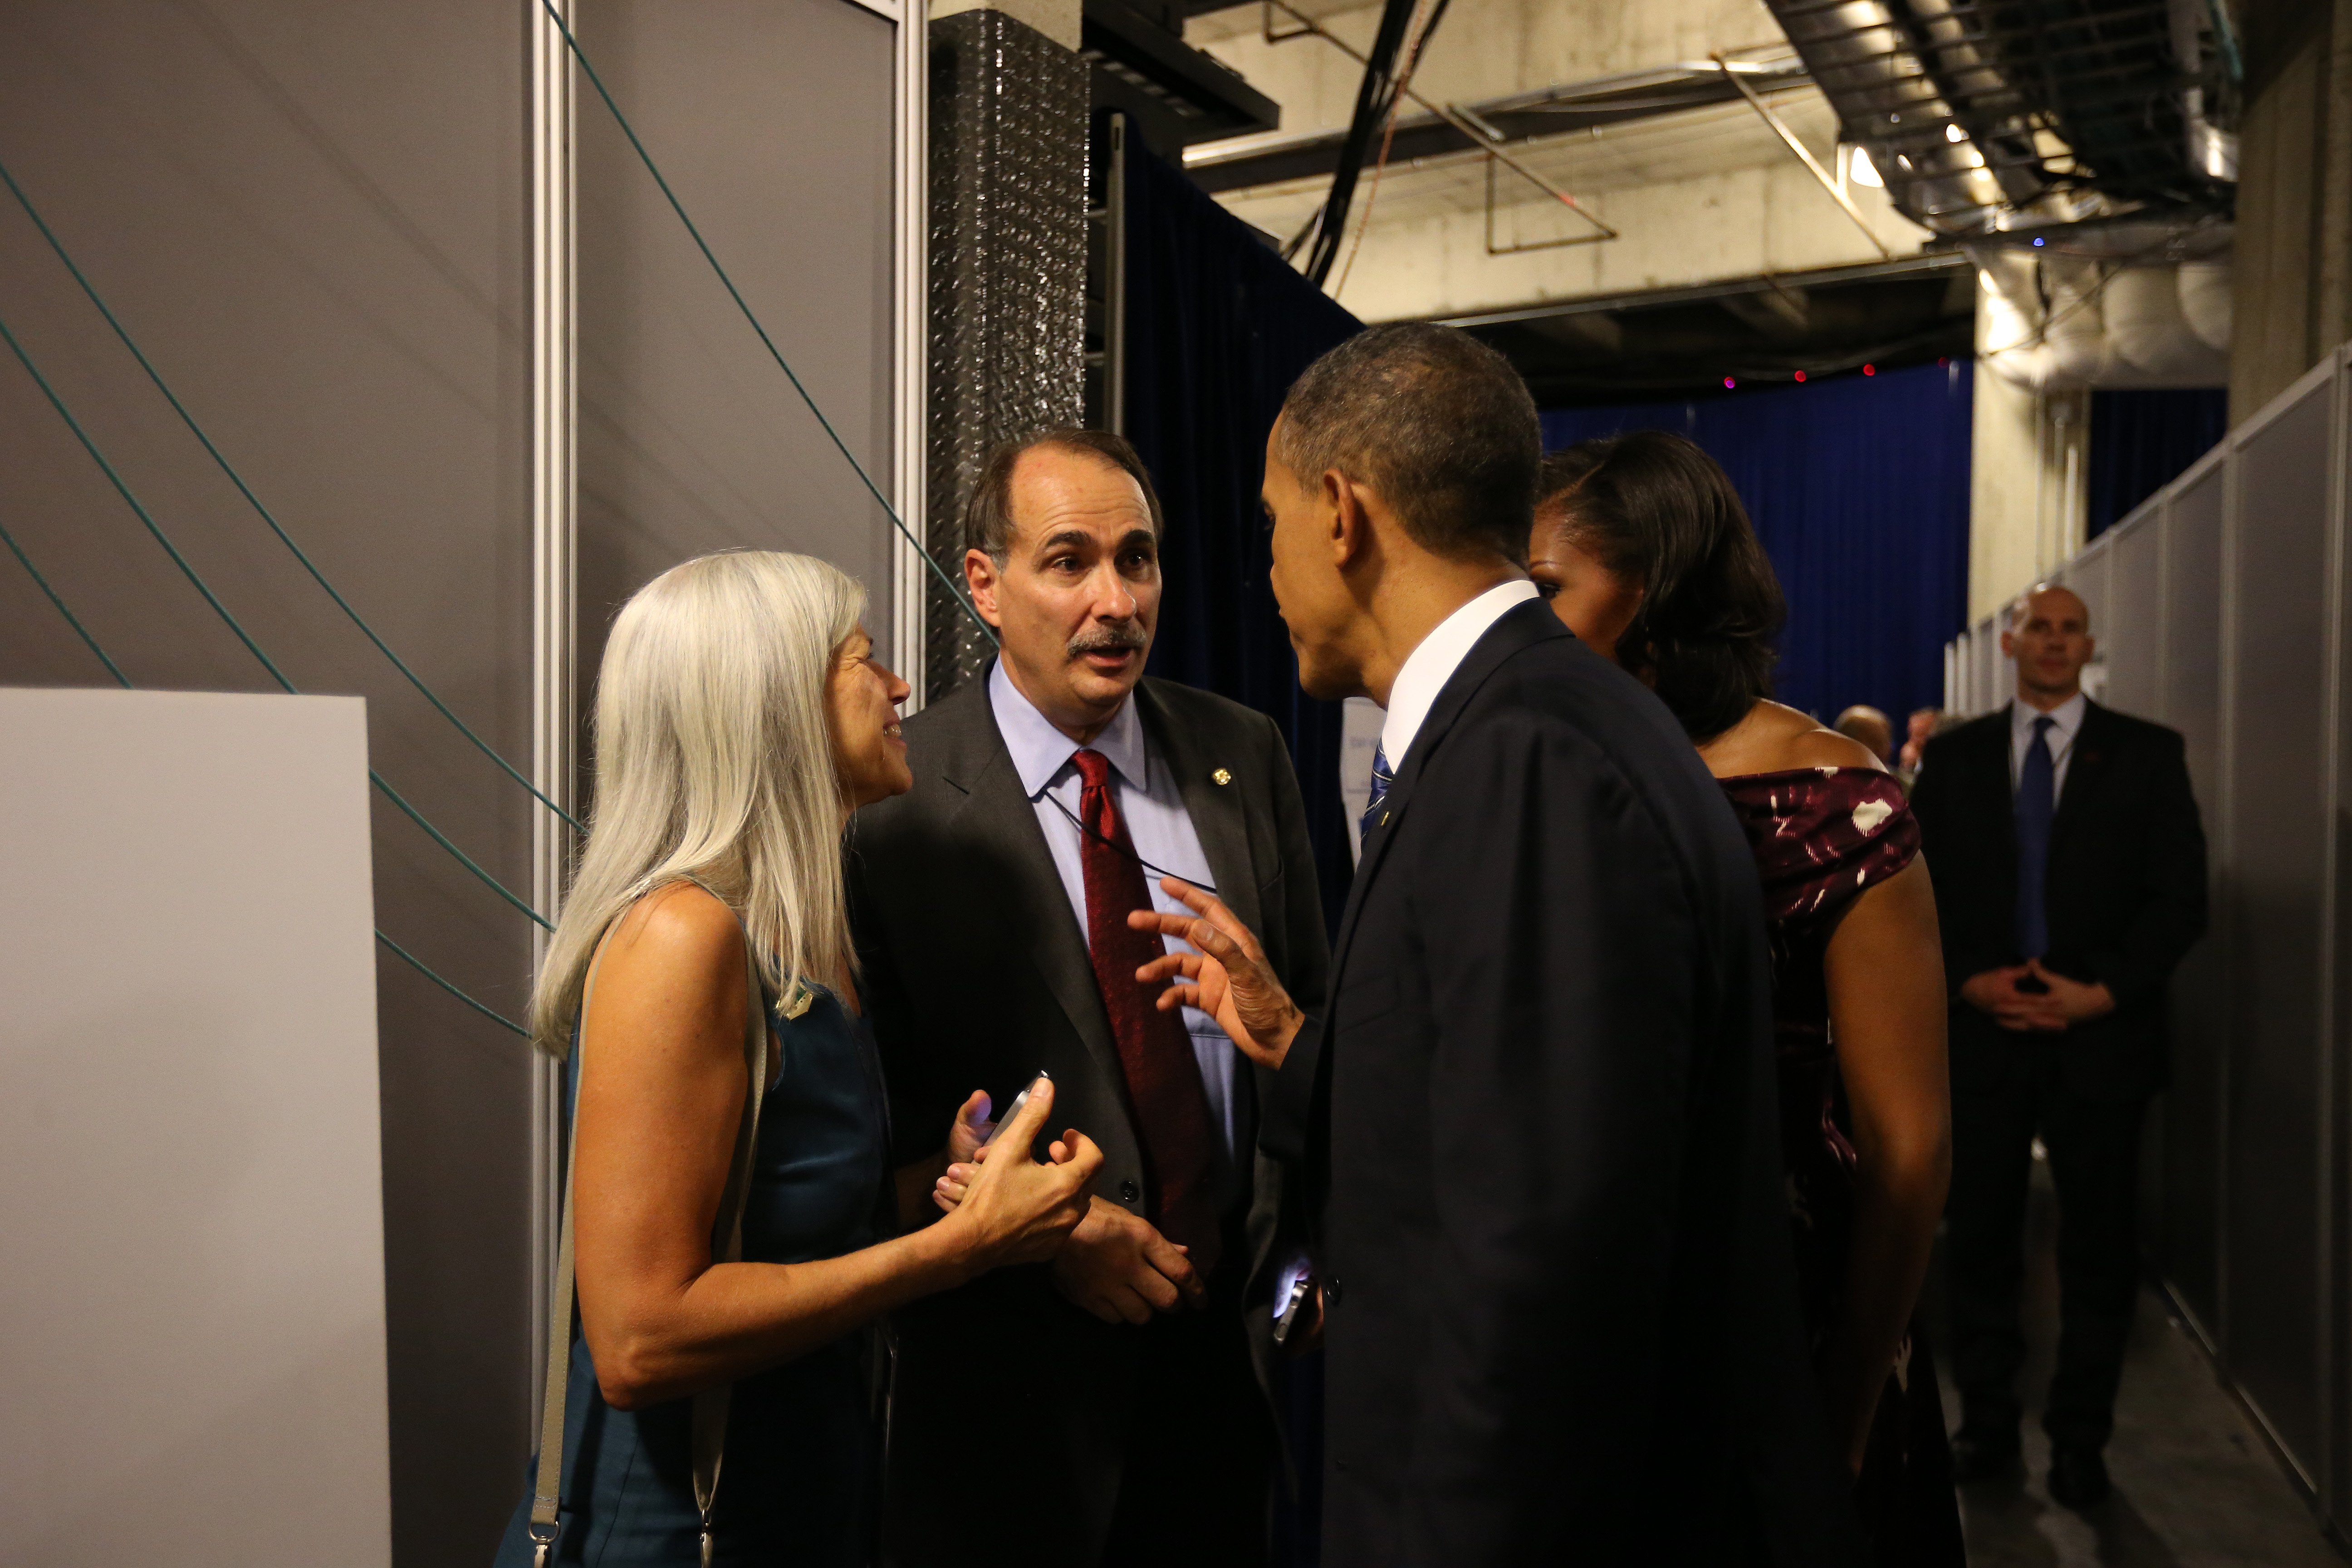 CHARLOTTE, NC - SEPTEMBER 06: (AFP OUT) U.S. President Barack Obama and First Lady Michelle Obama talk with senior campaign advisor David Axelrod following Obama's speech at the Democratic National Convention at Time Warner Cable Arena on September 6, 2012 in Charlotte, North Carolina. The DNC nominated U.S. President Barack Obama as the Democratic presidential candidate. (Photo by Doug Mills-Pool/Getty Images)